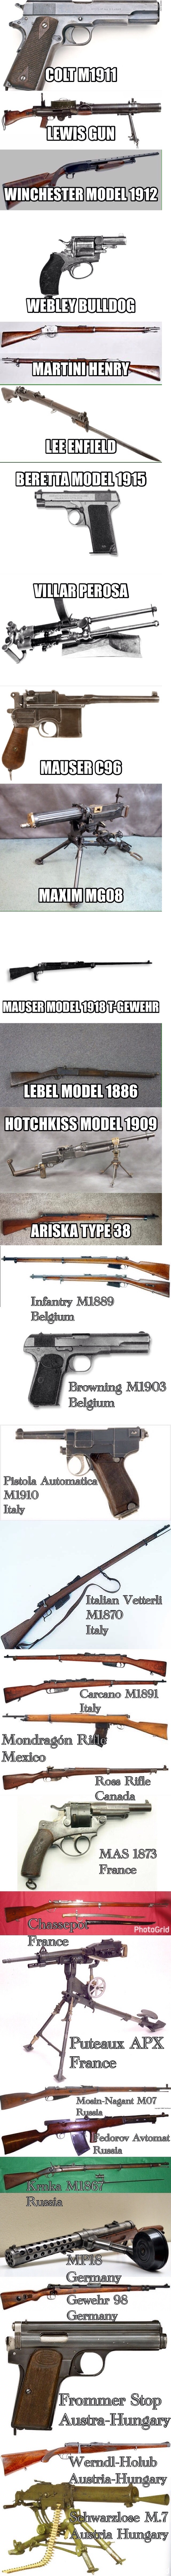 Guns of WWI